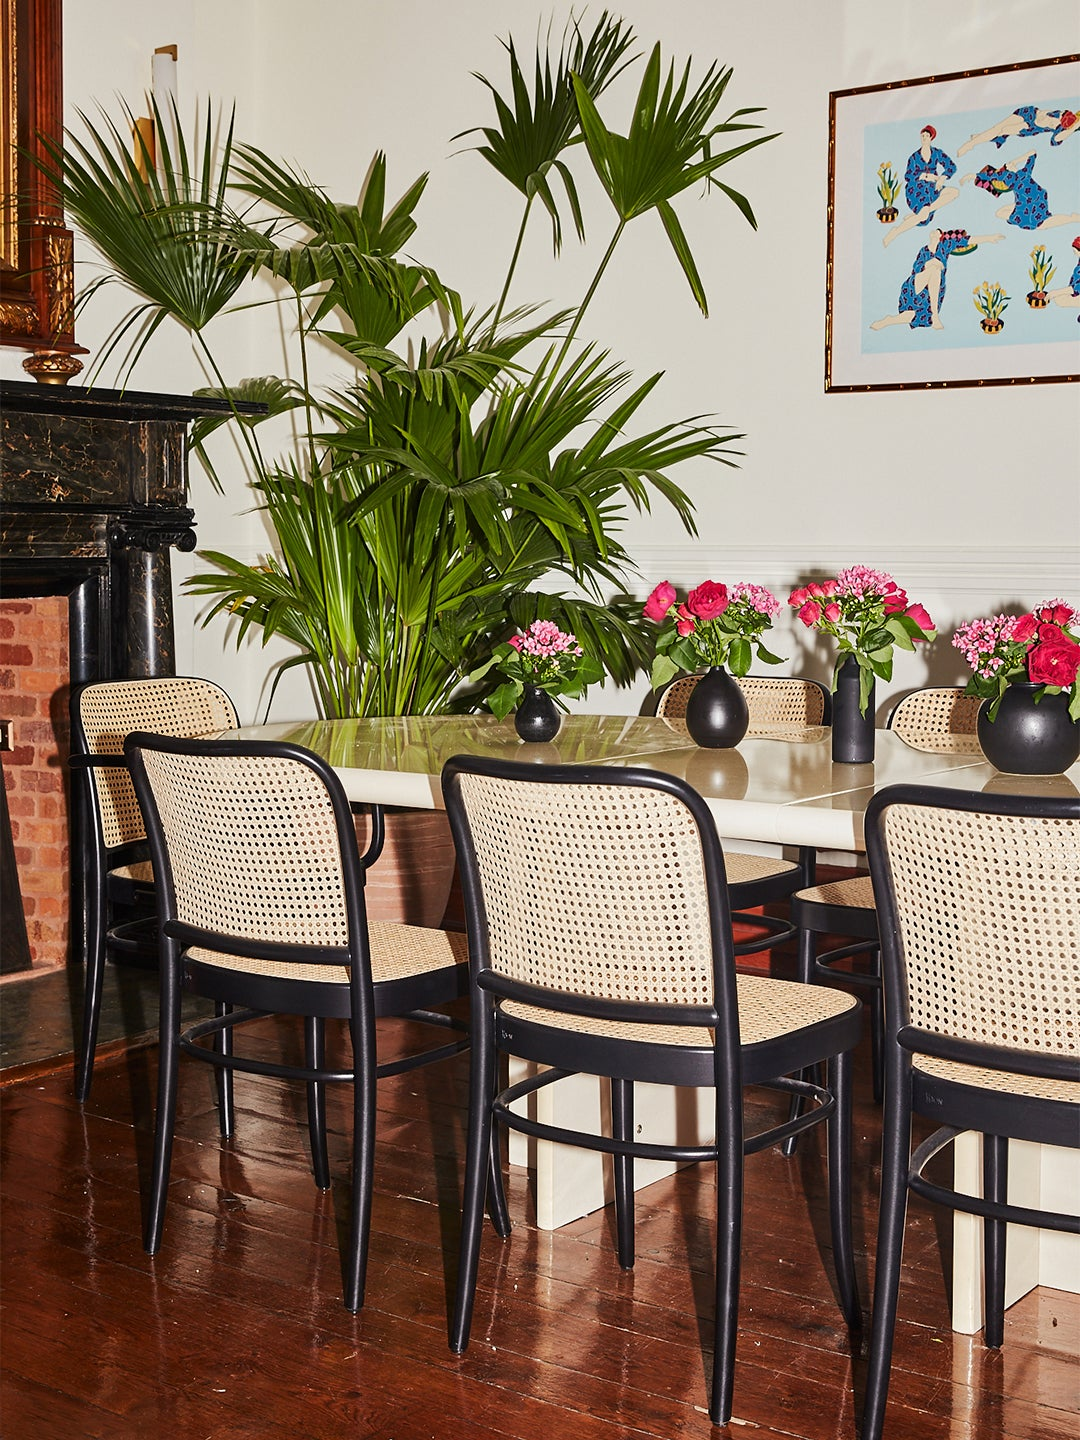 dining room with cane chairs and giant plant in the corner